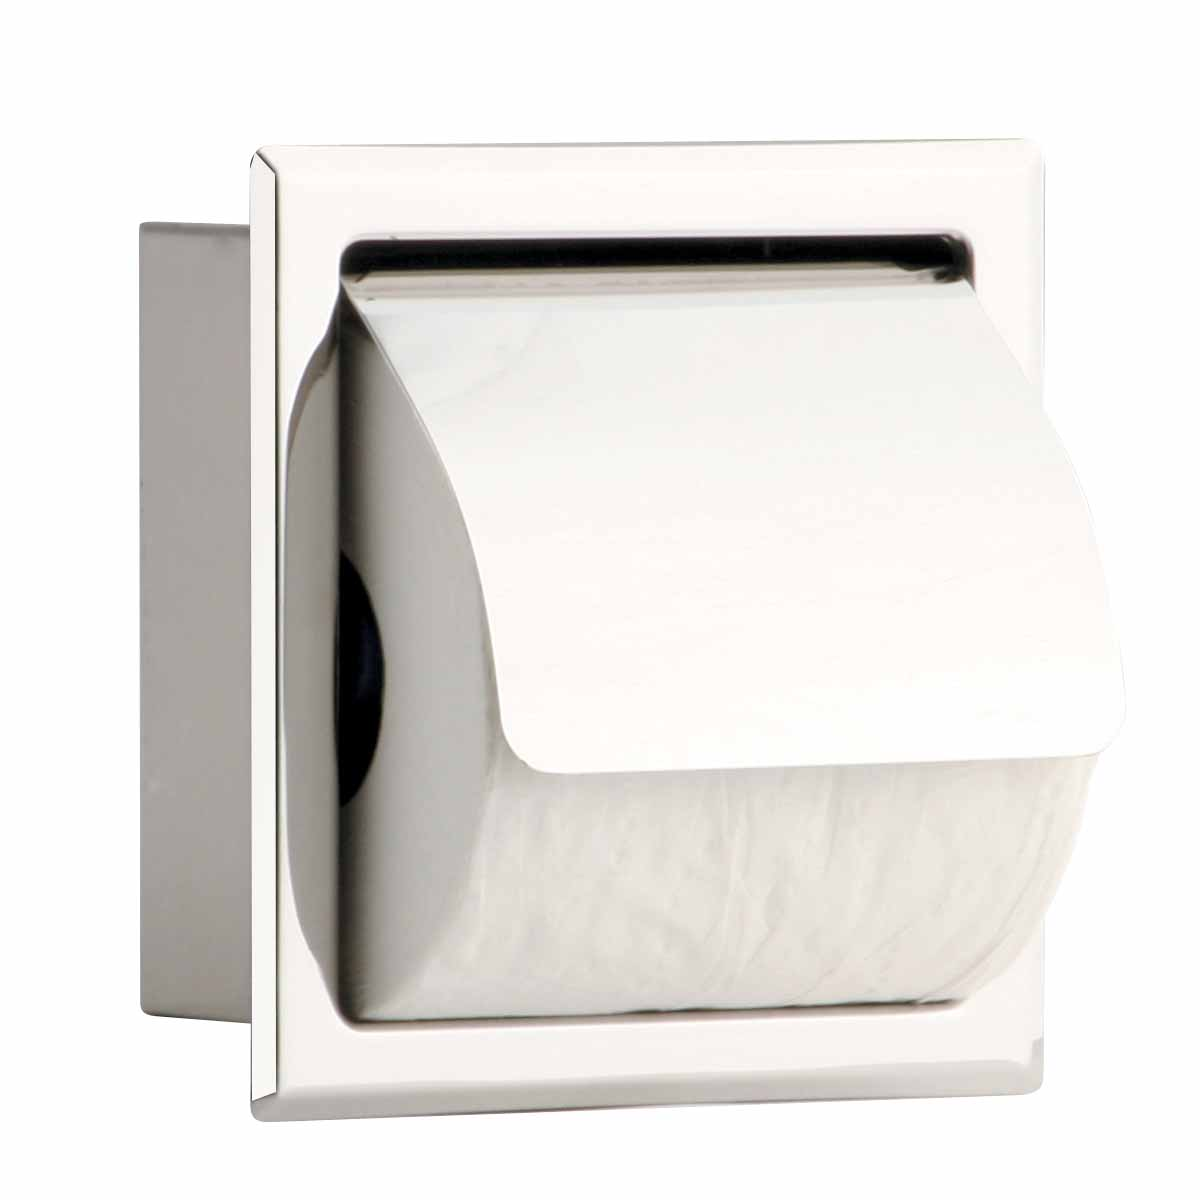 In Wall Toilet Paper Holder stainless stainless steel toilet tissue holder with lid